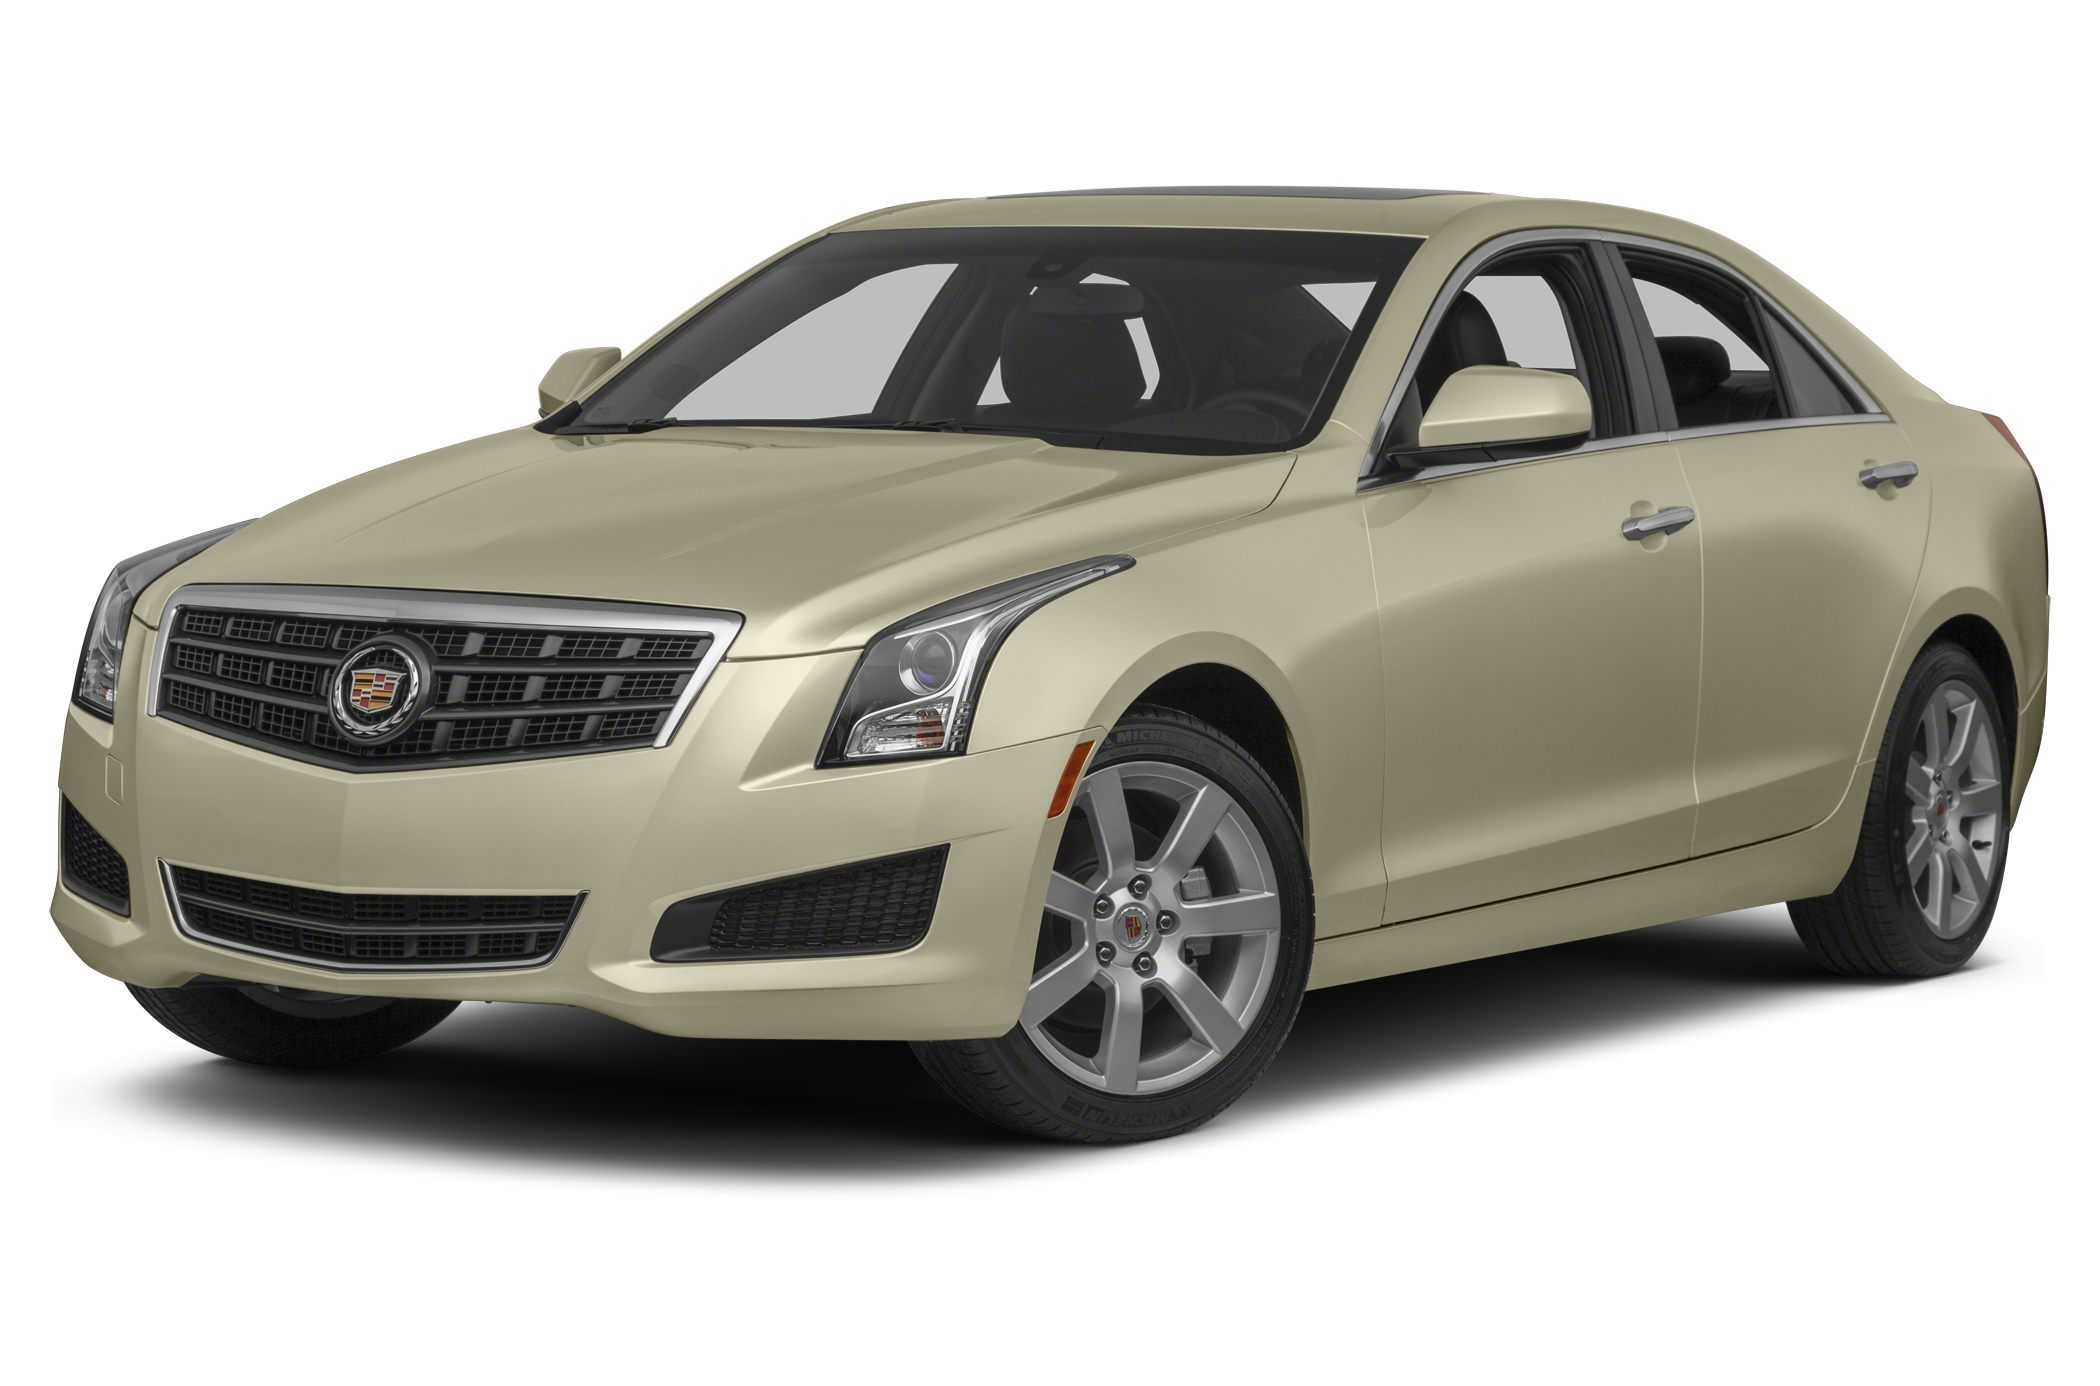 2013 Cadillac ATS 2.5L Luxury Sedan for sale in Cathedral City for $26,995 with 7,464 miles.